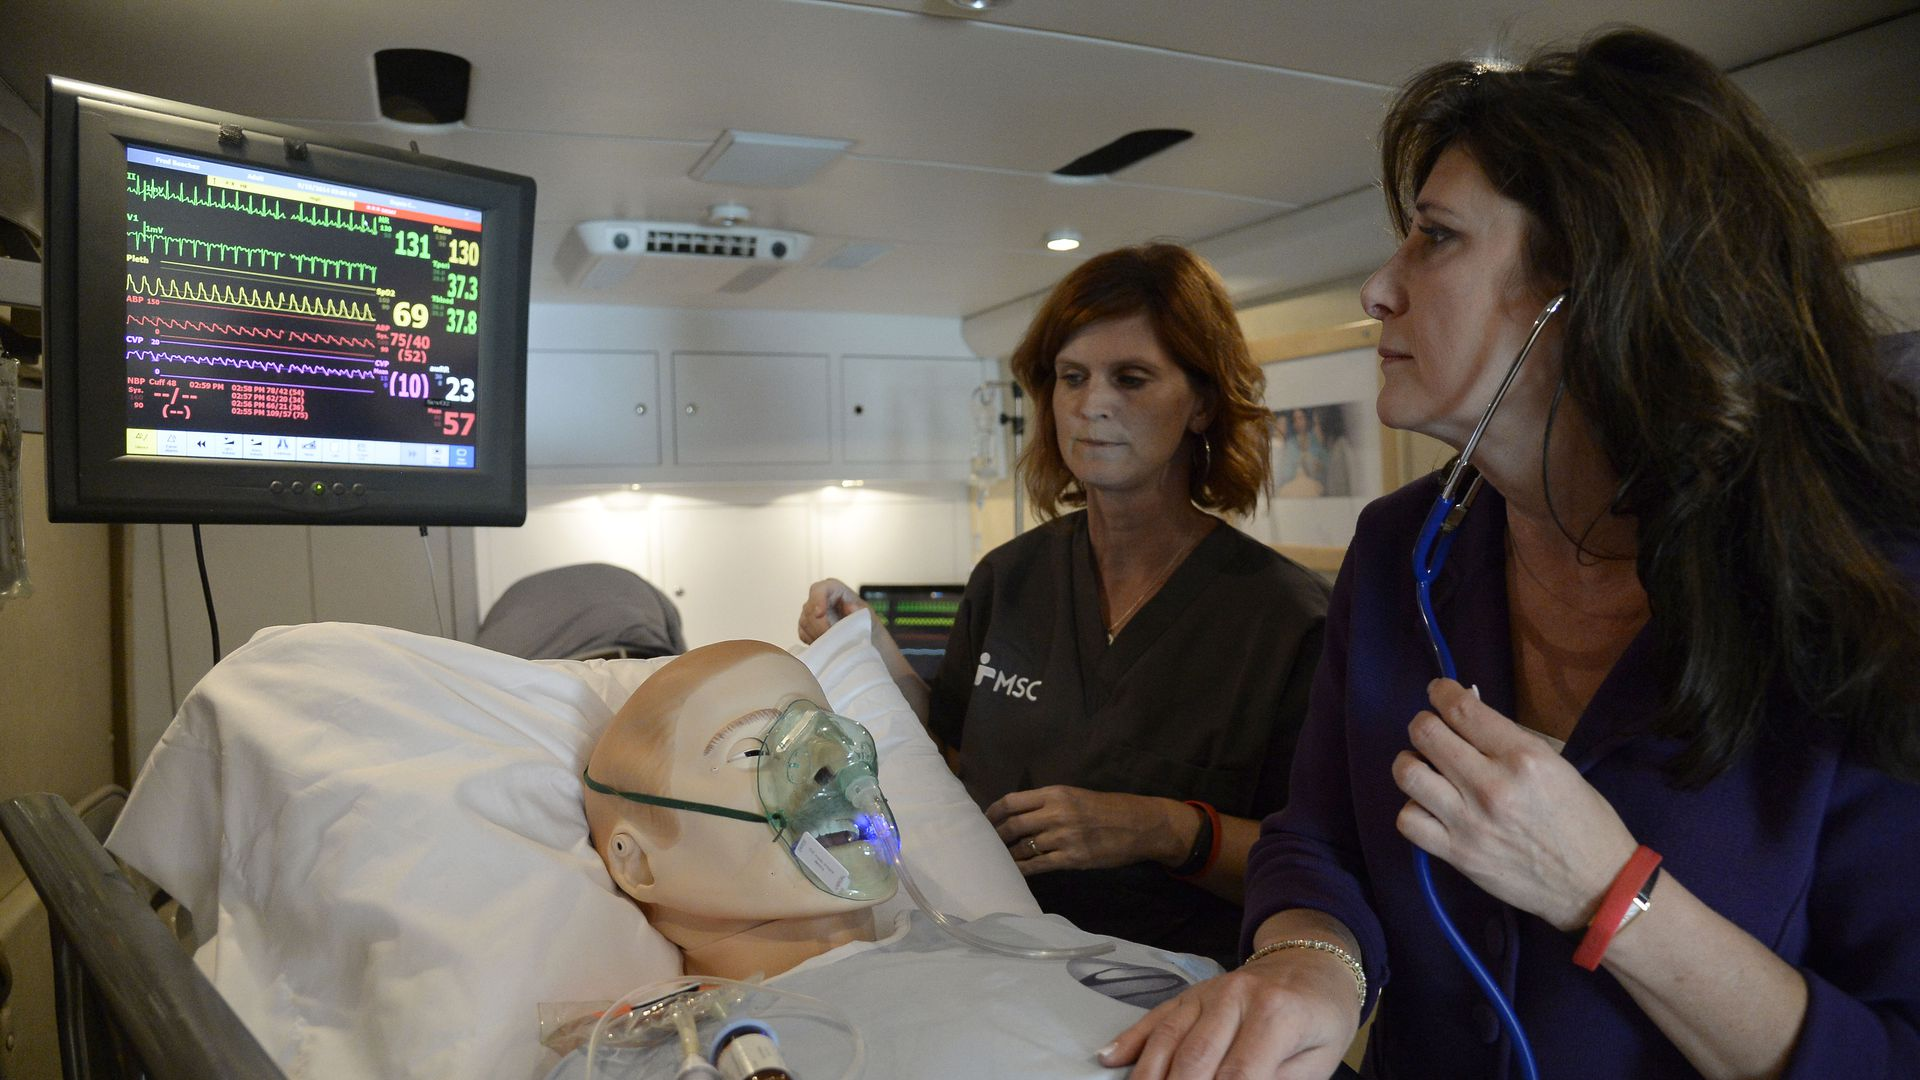 Photo of two people checking vitals of sepsis dummy in lab to train sepsis awareness